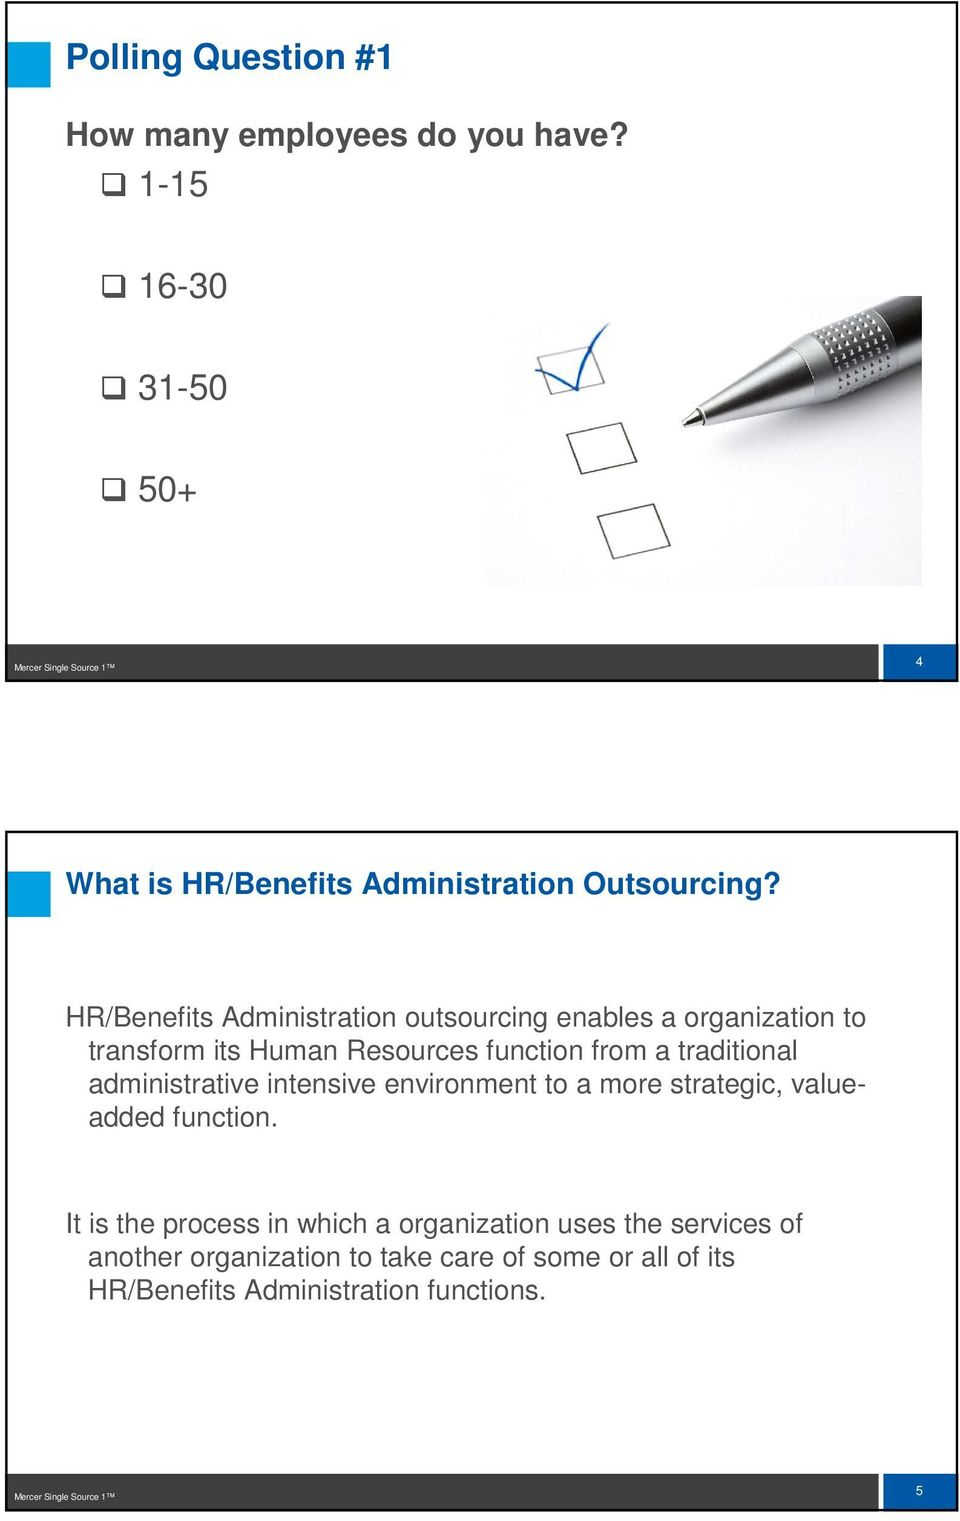 HR/Benefits Administration outsourcing enables a organization to transform its Human Resources function from a traditional